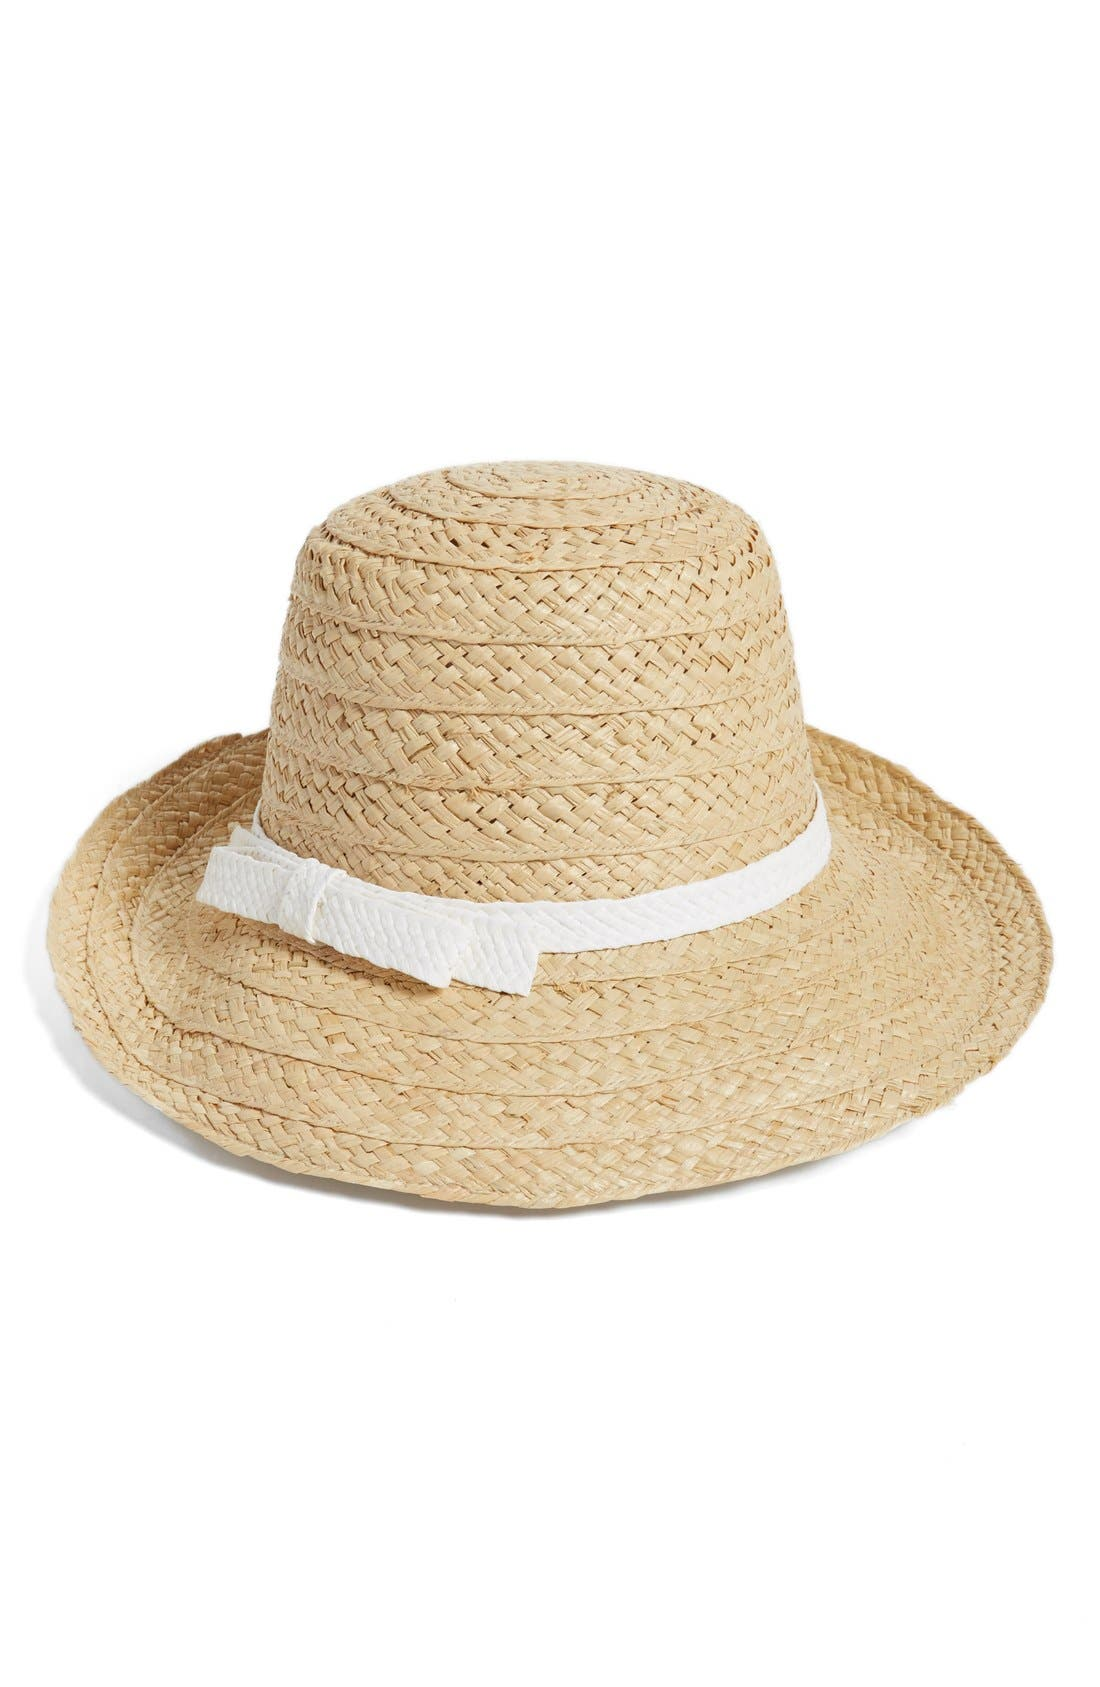 Main Image - kate spade new york asymmetrical sun hat